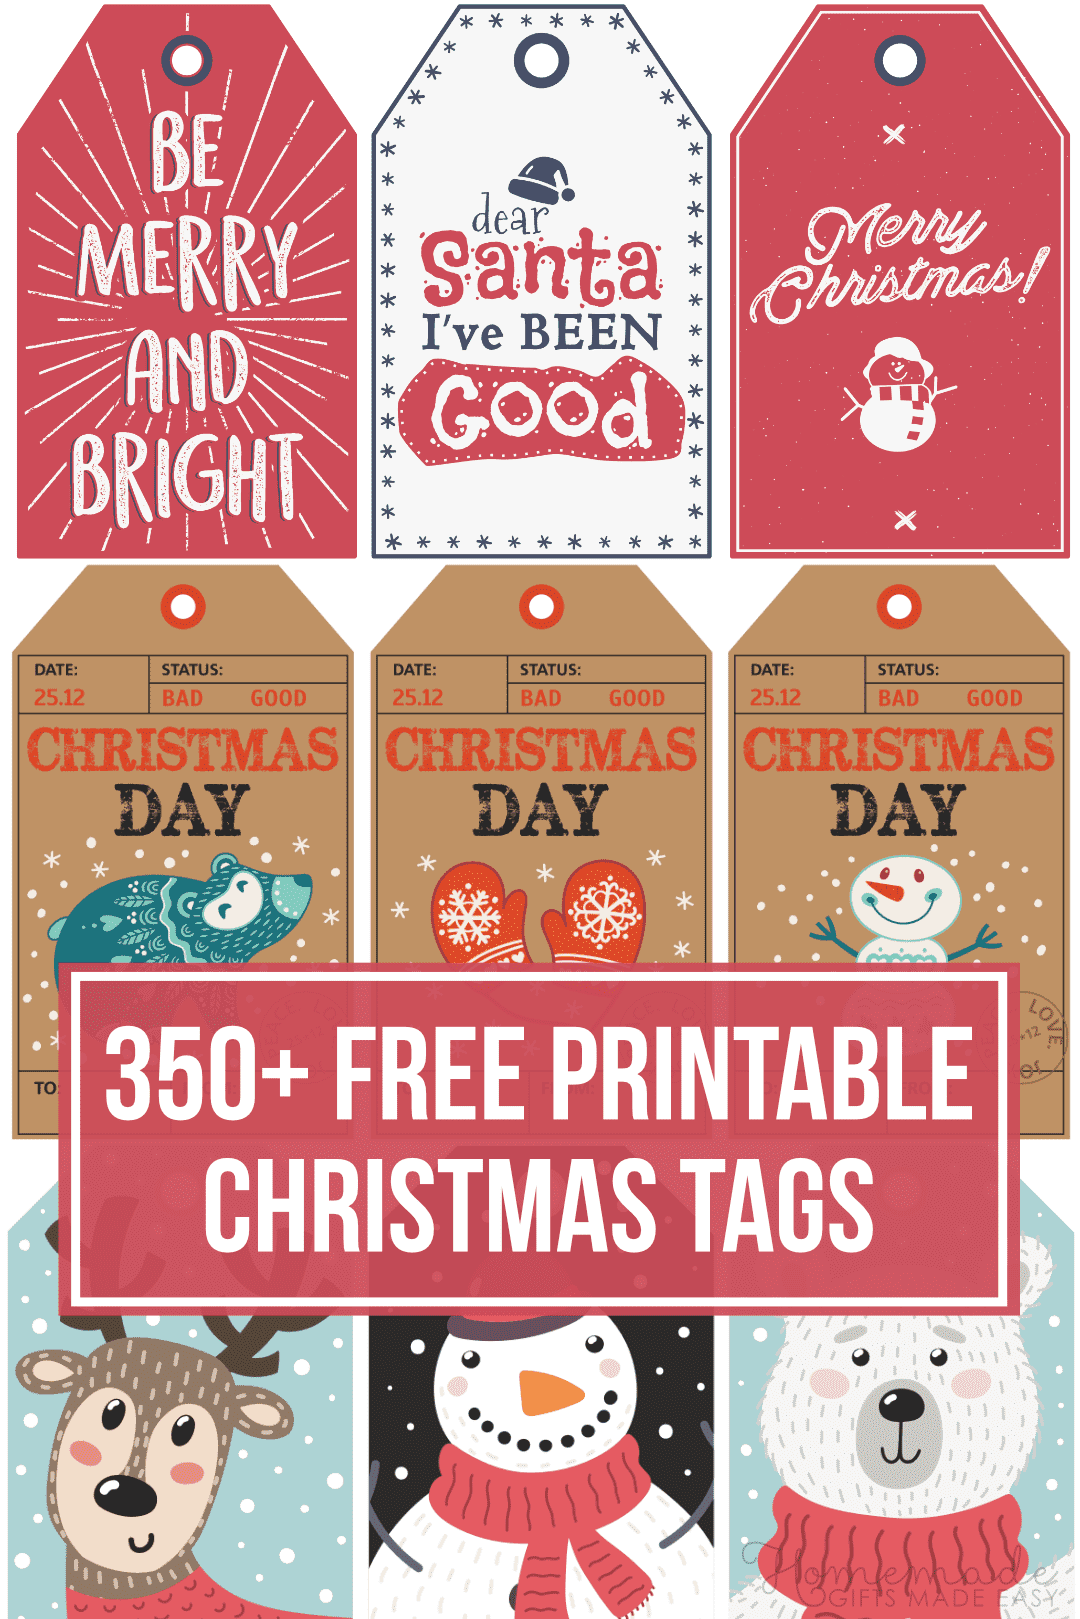 free printable christmas tags - 350+ tags